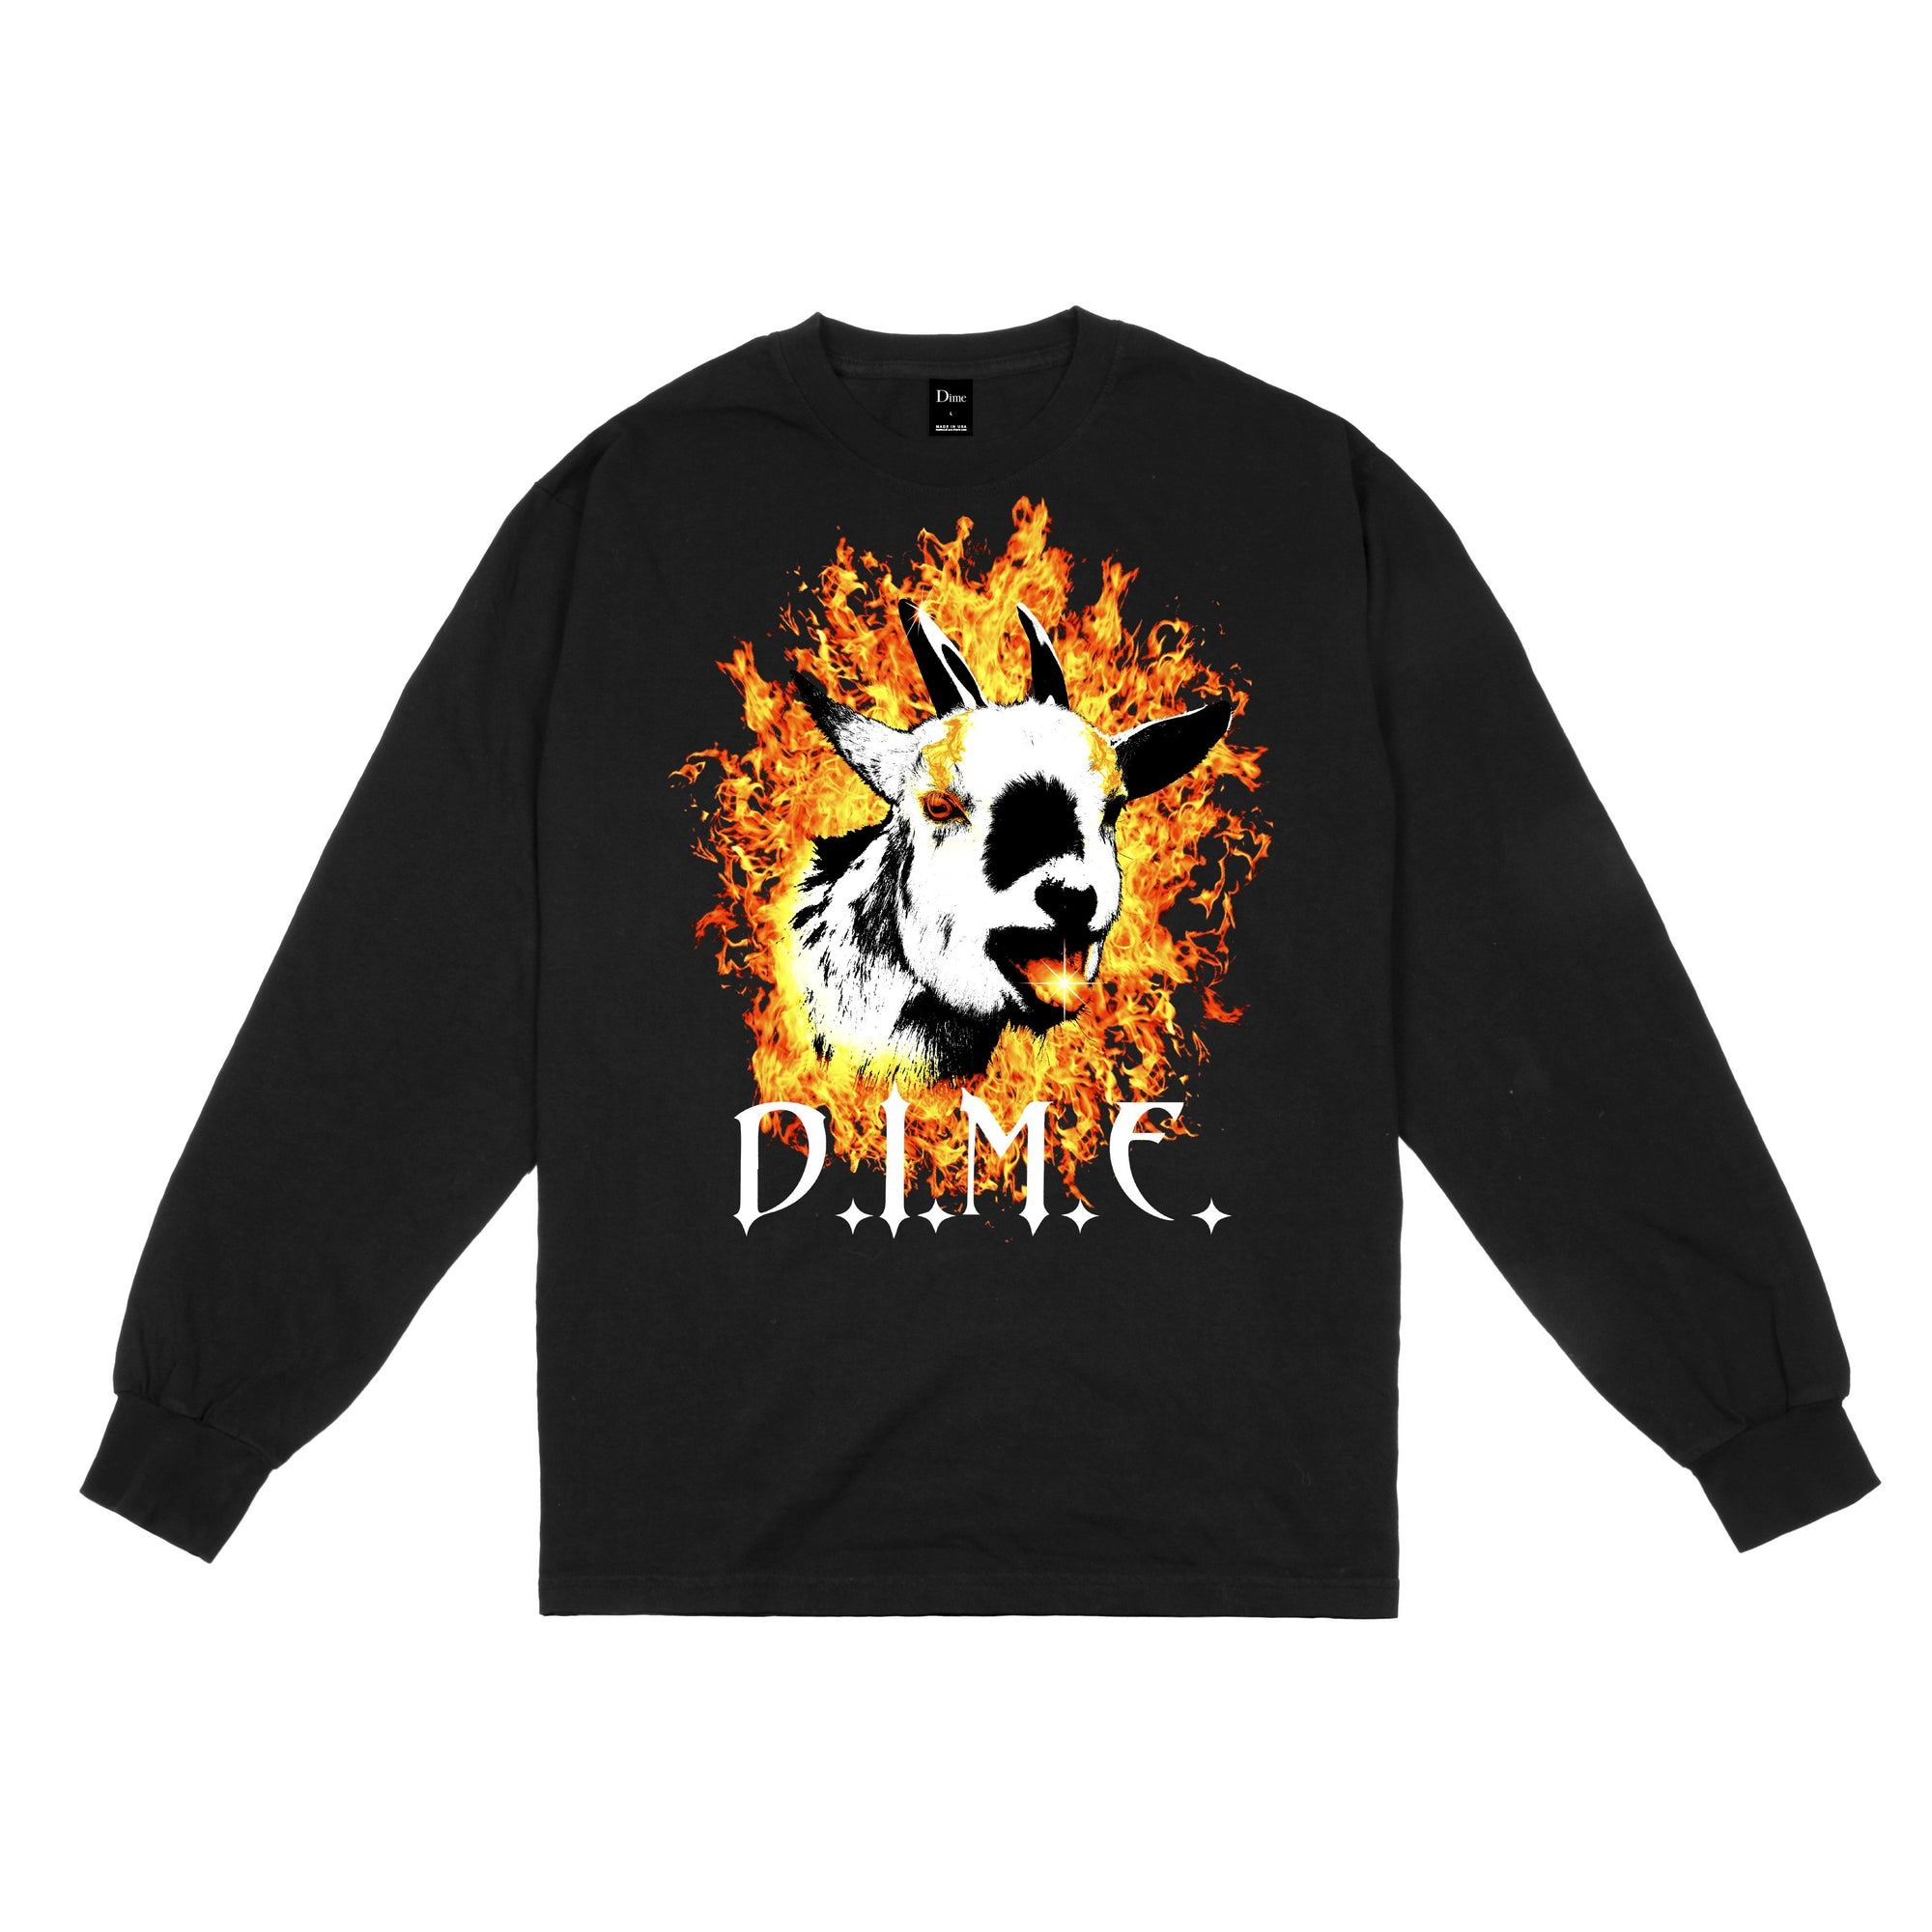 Dime Fire Goat L/S Tee Product Photo #1